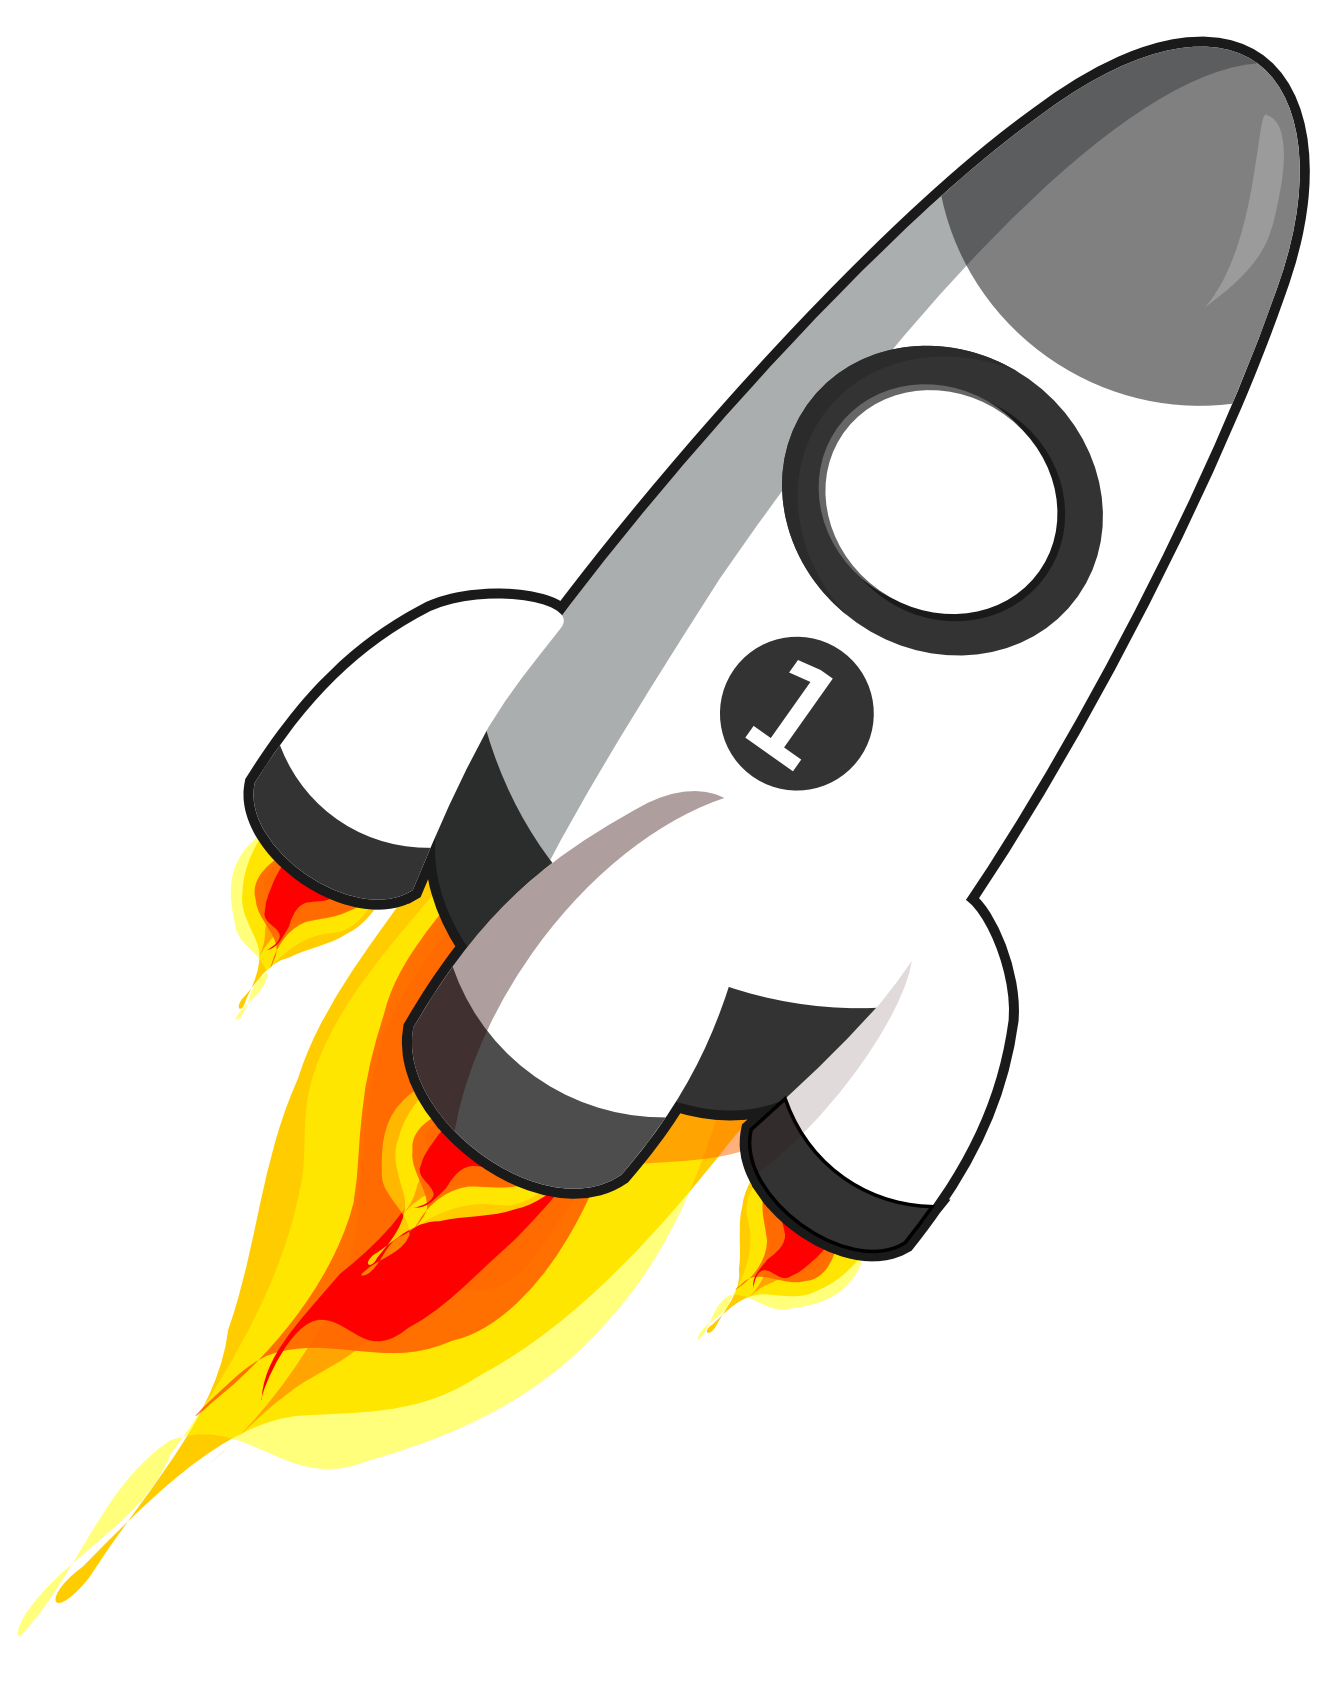 Blast vector rocket. Collection of free exploded